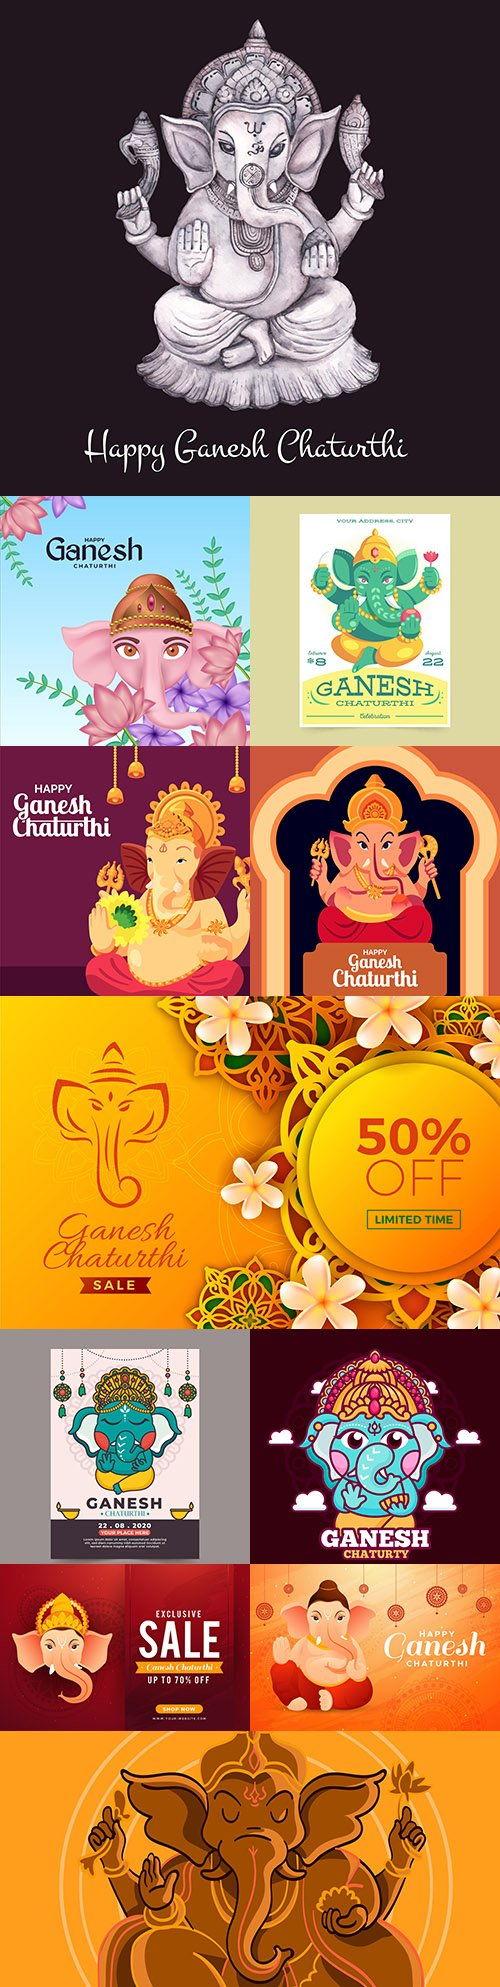 Ganesha Chaturthi Indian festival design illustration